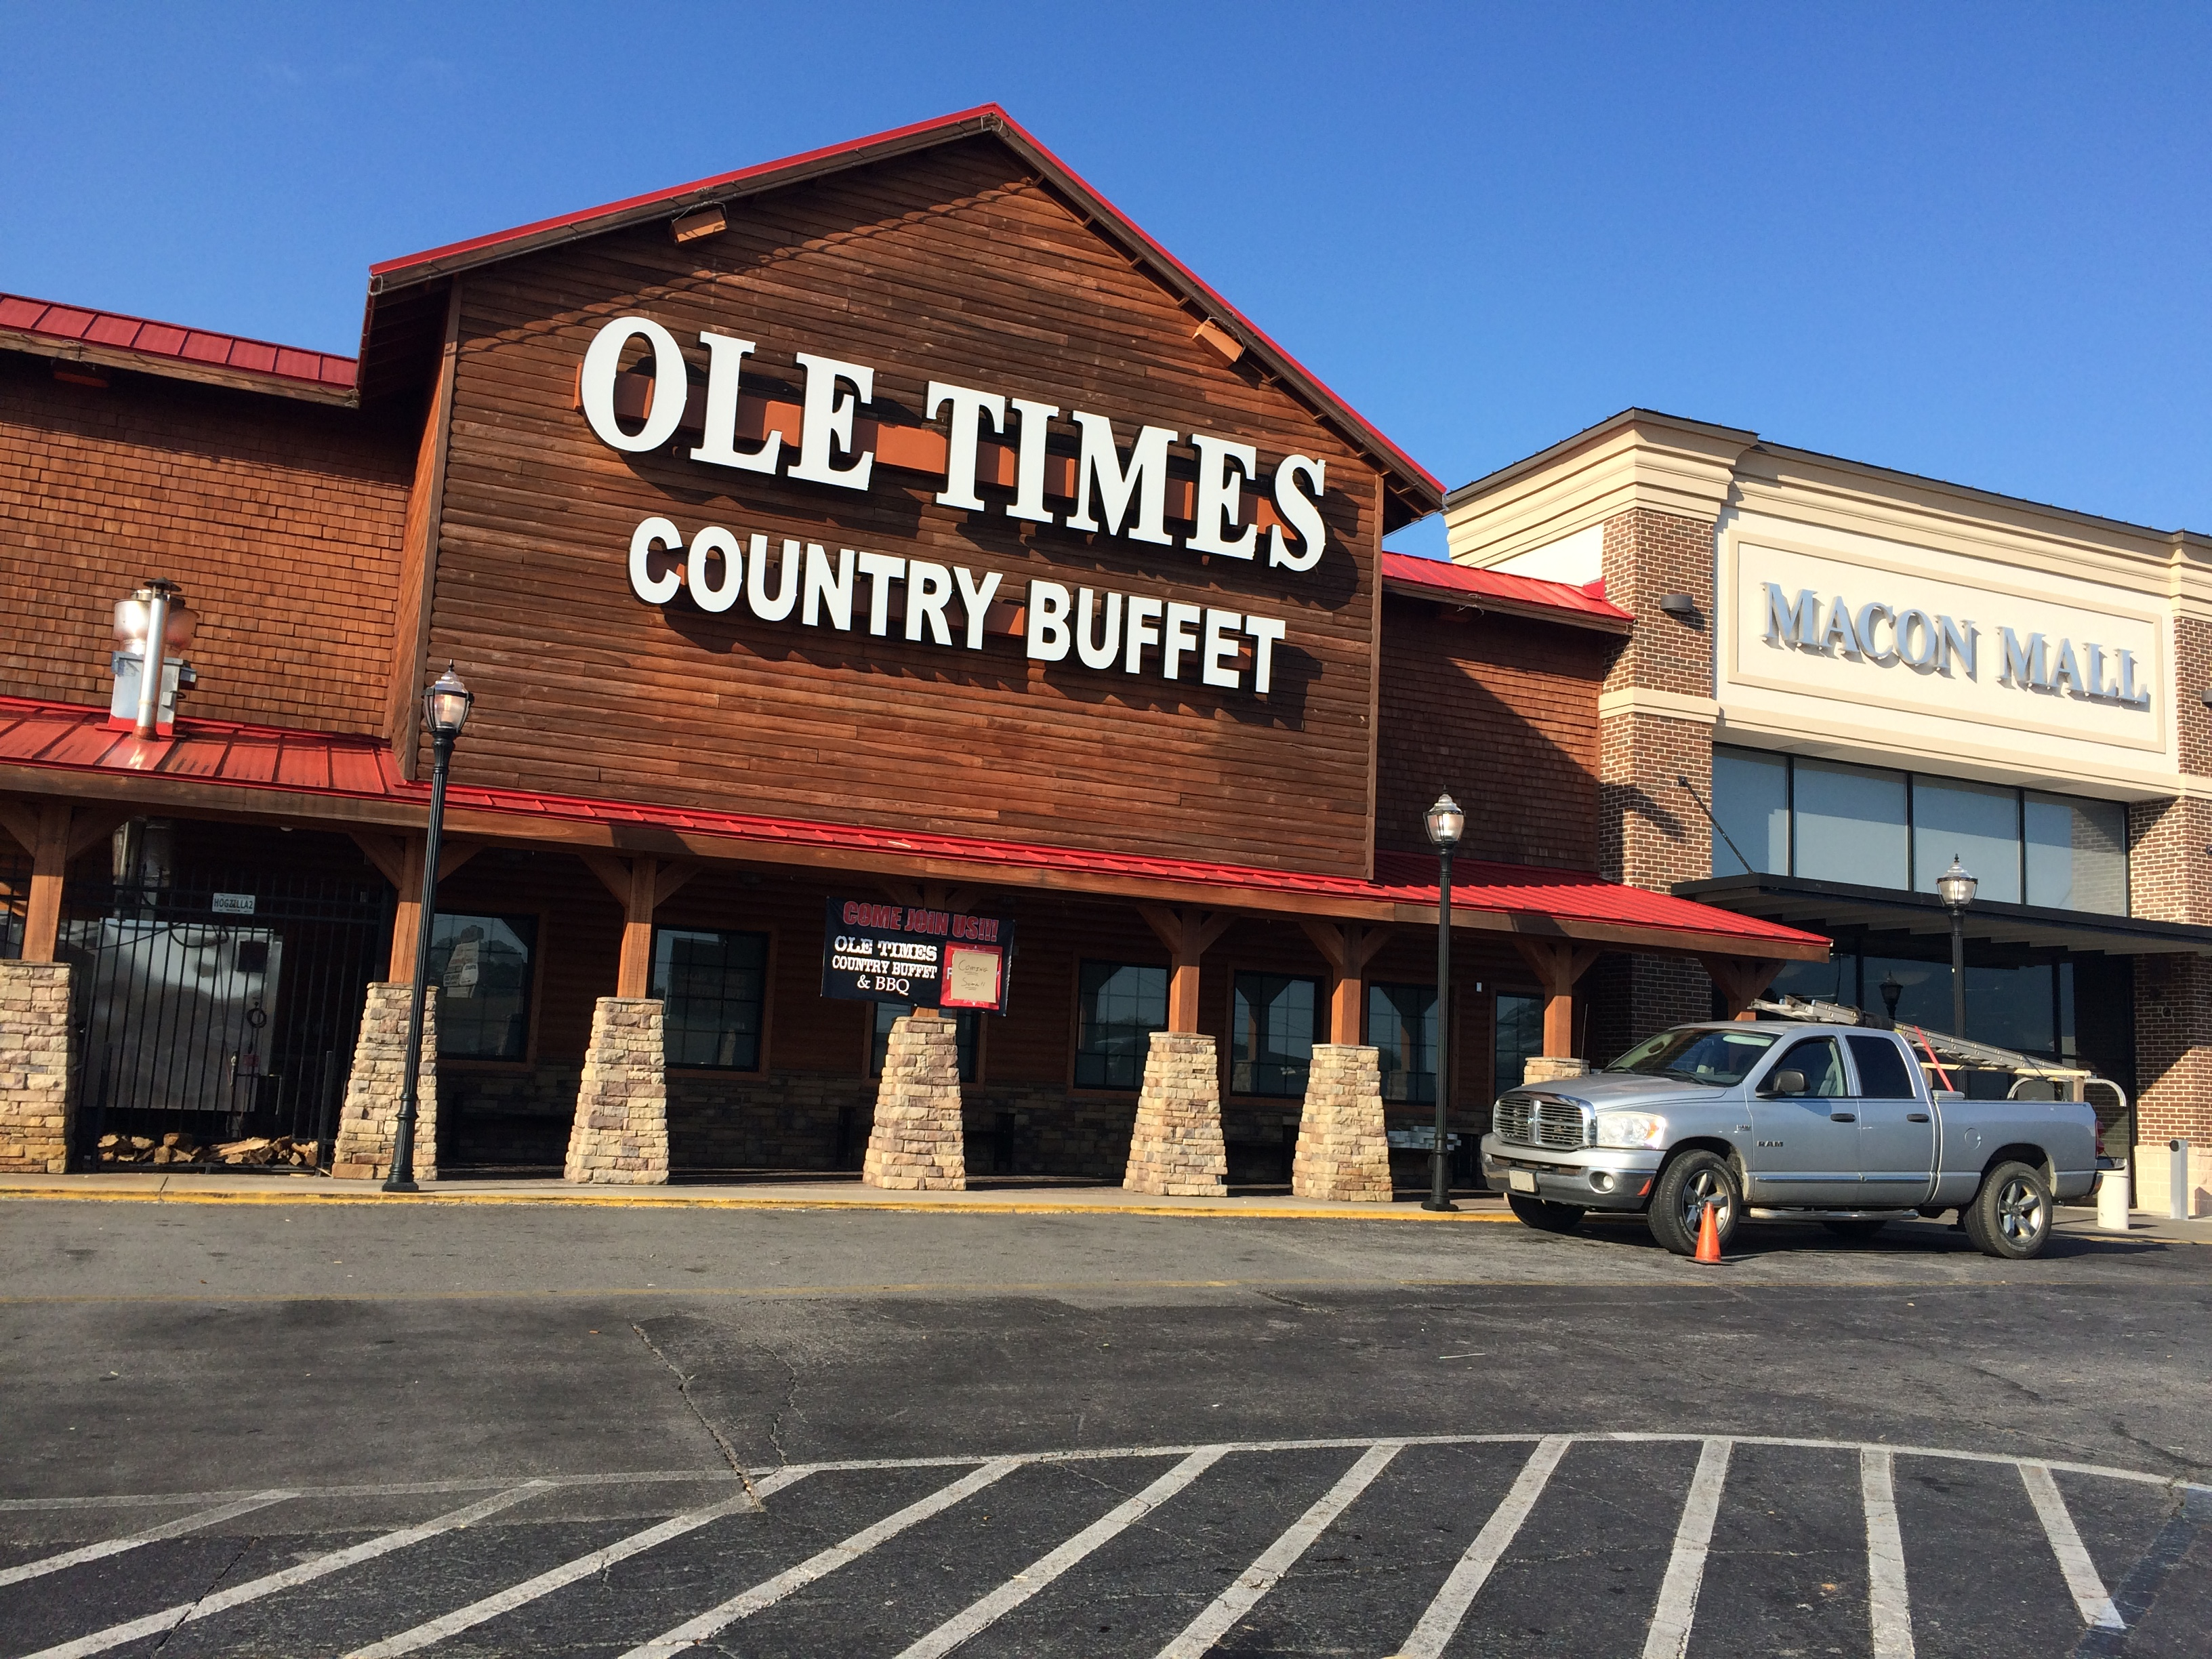 Ole Times Country Buffet is a true Southern Cooking country buffet restaurant proudly serving South Georgia and North Florida. We offer a wide selection of southern cooked food, made from only the highest quality products available, in a cozy, inviting atmosphere.